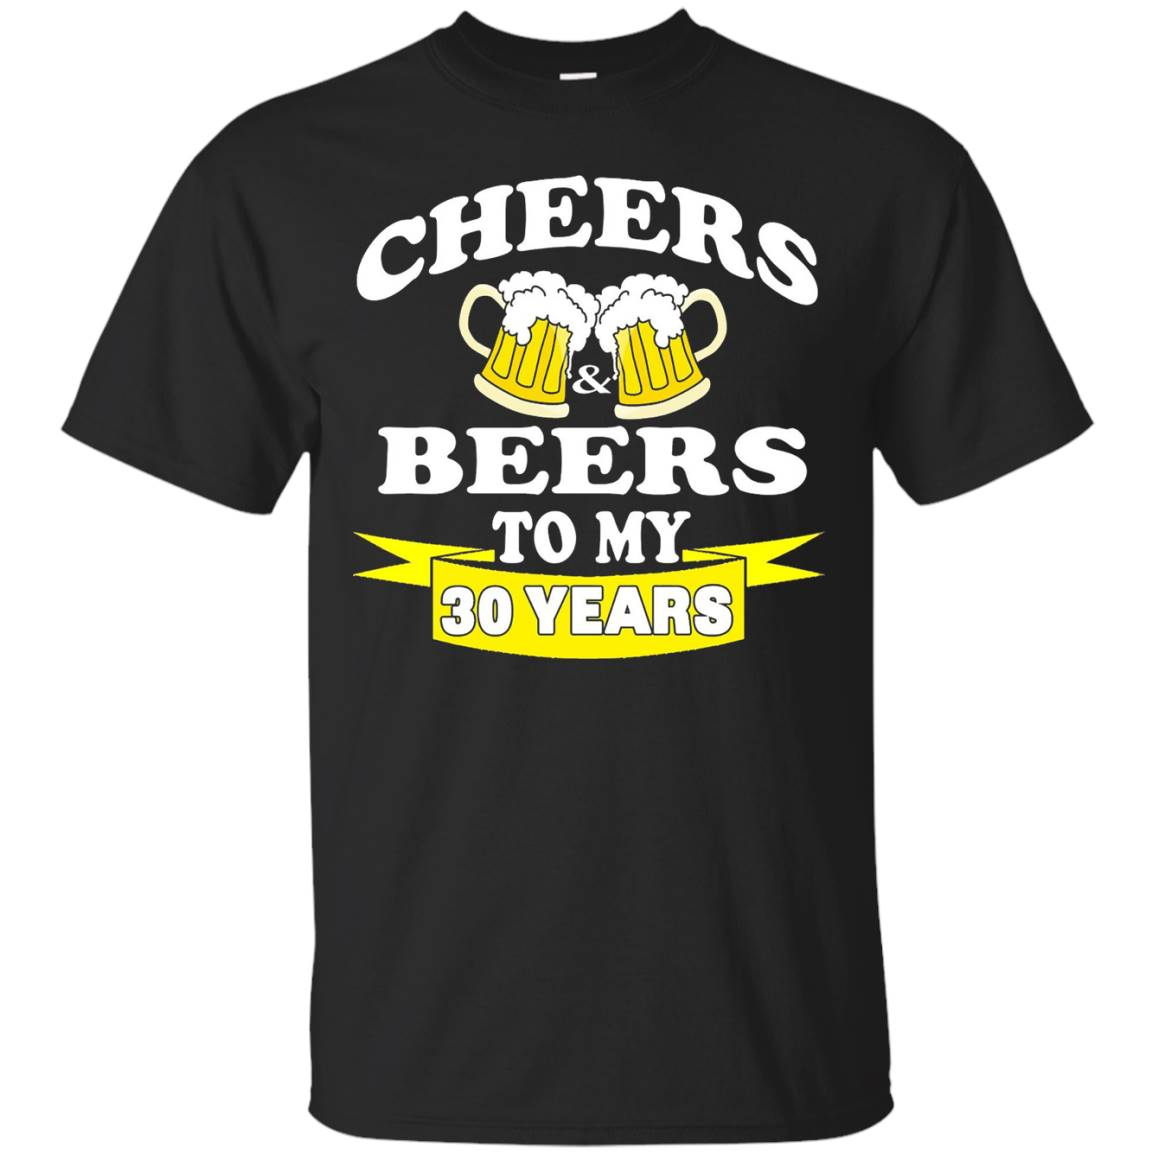 Cheers and Beers To My 30 Years – 30th Birthday T-shirt – T-Shirt